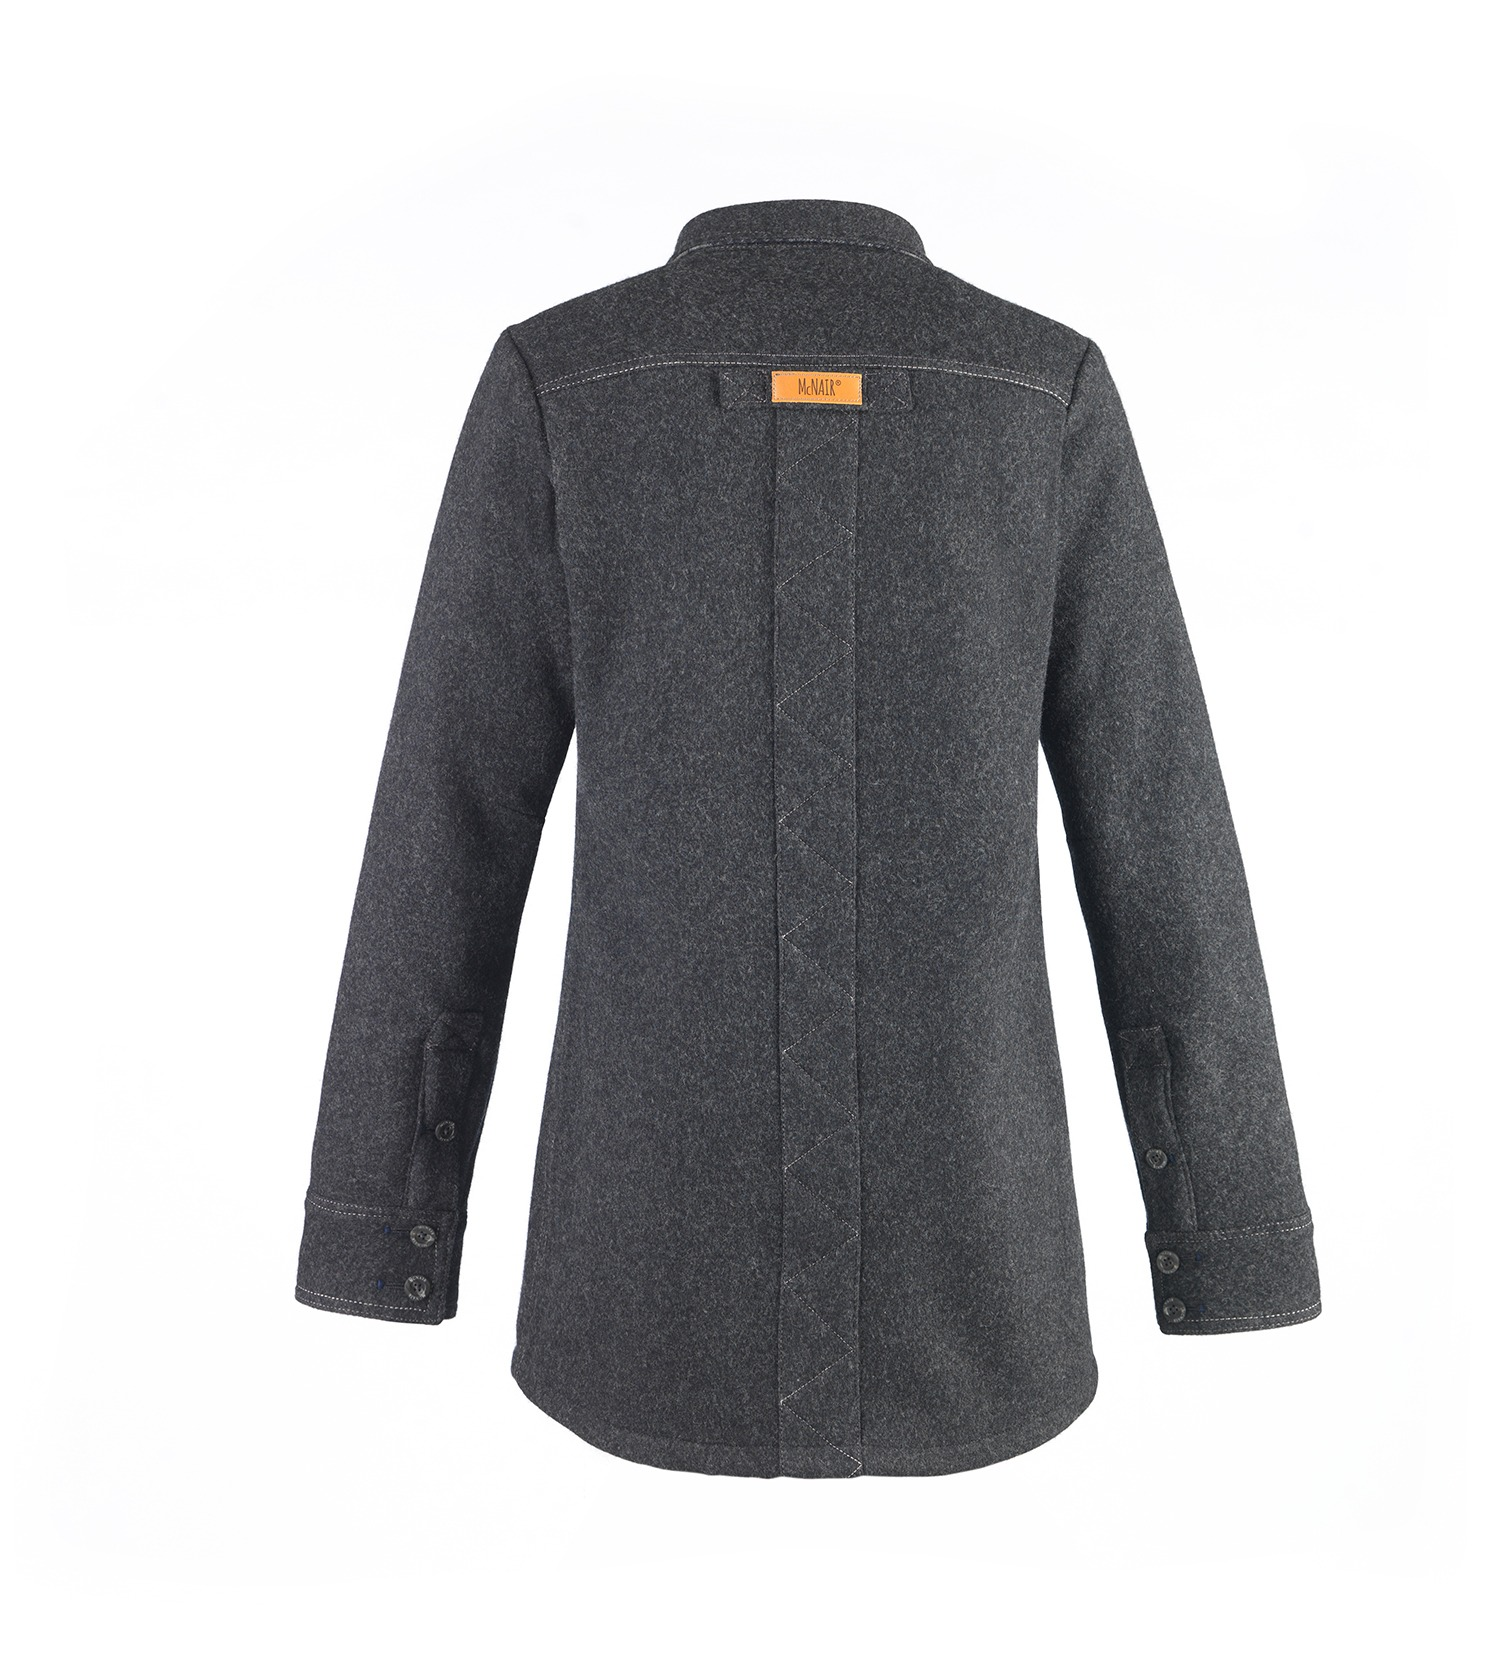 womens midweight merino shirt back